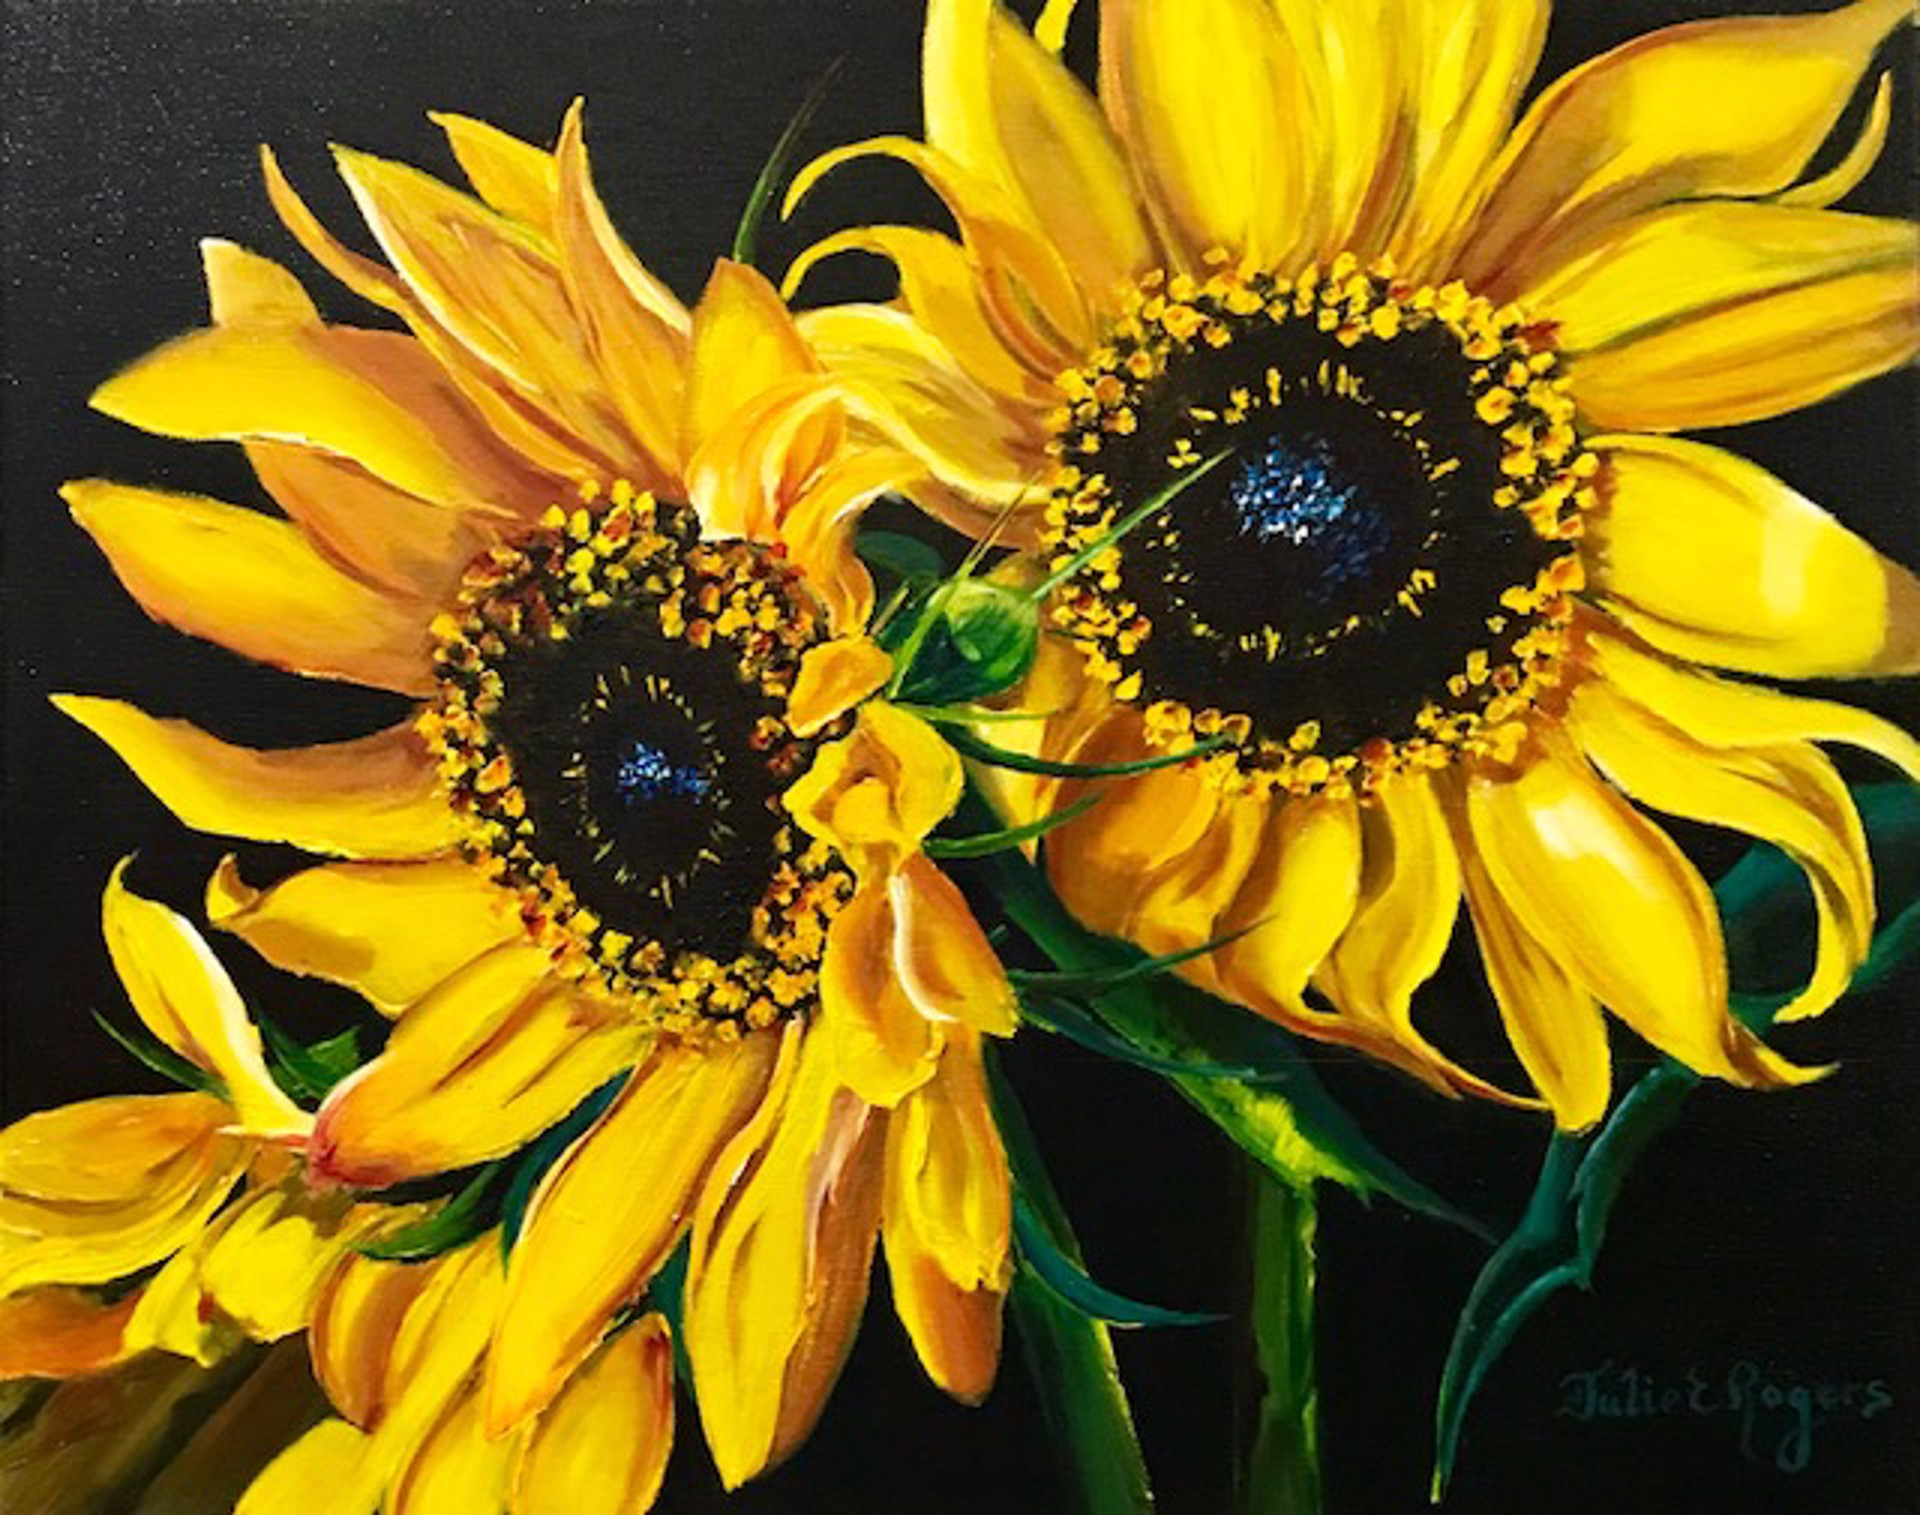 Sunflowers #7 by Julie Rogers